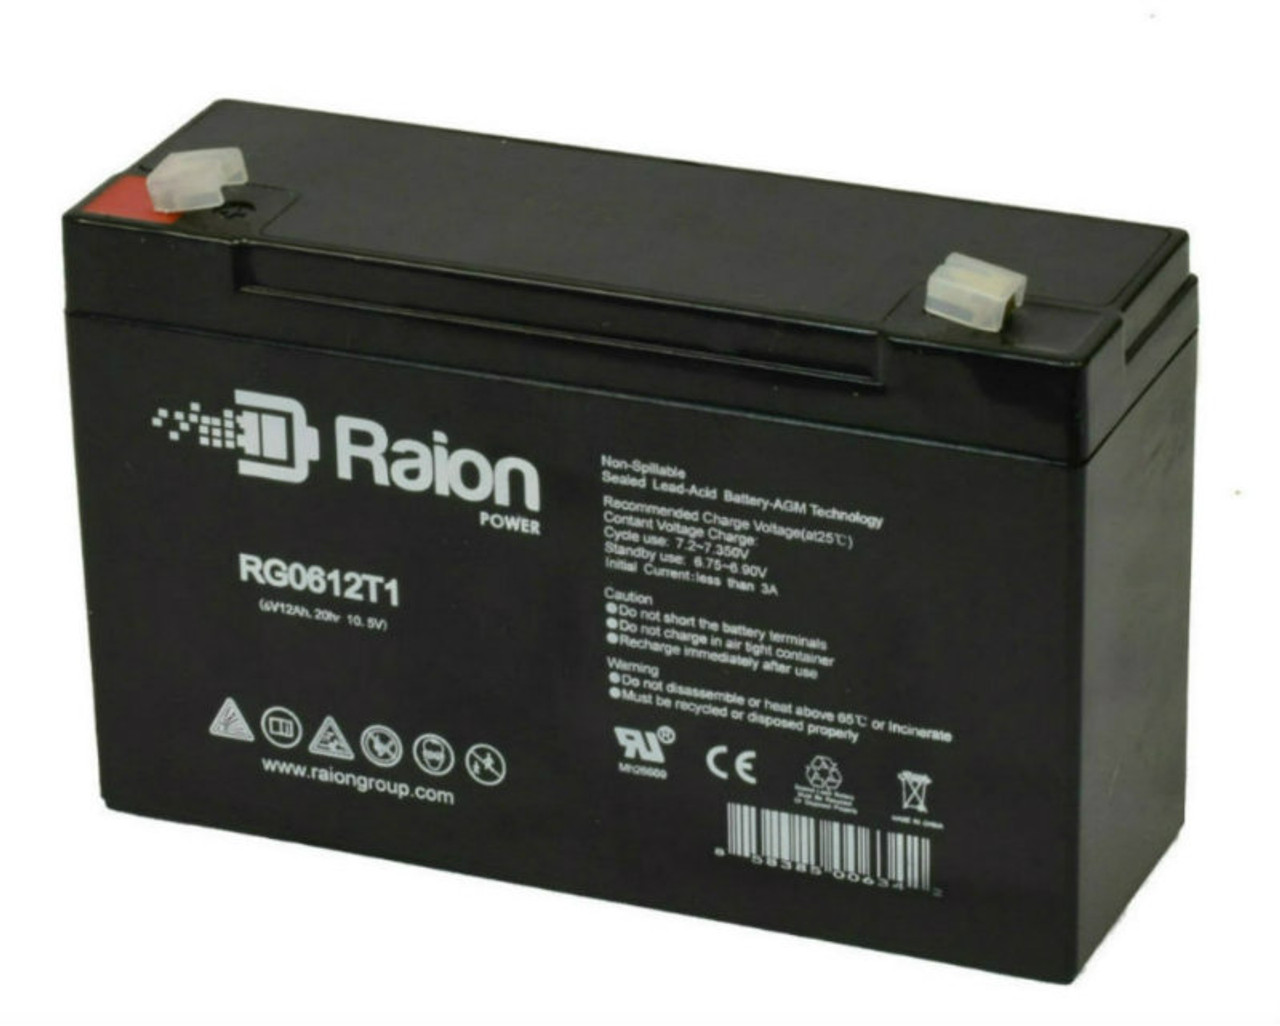 Raion Power RG06120T1 Replacement Battery Pack for Teledyne Big Beam 2SC6S16 emergency light